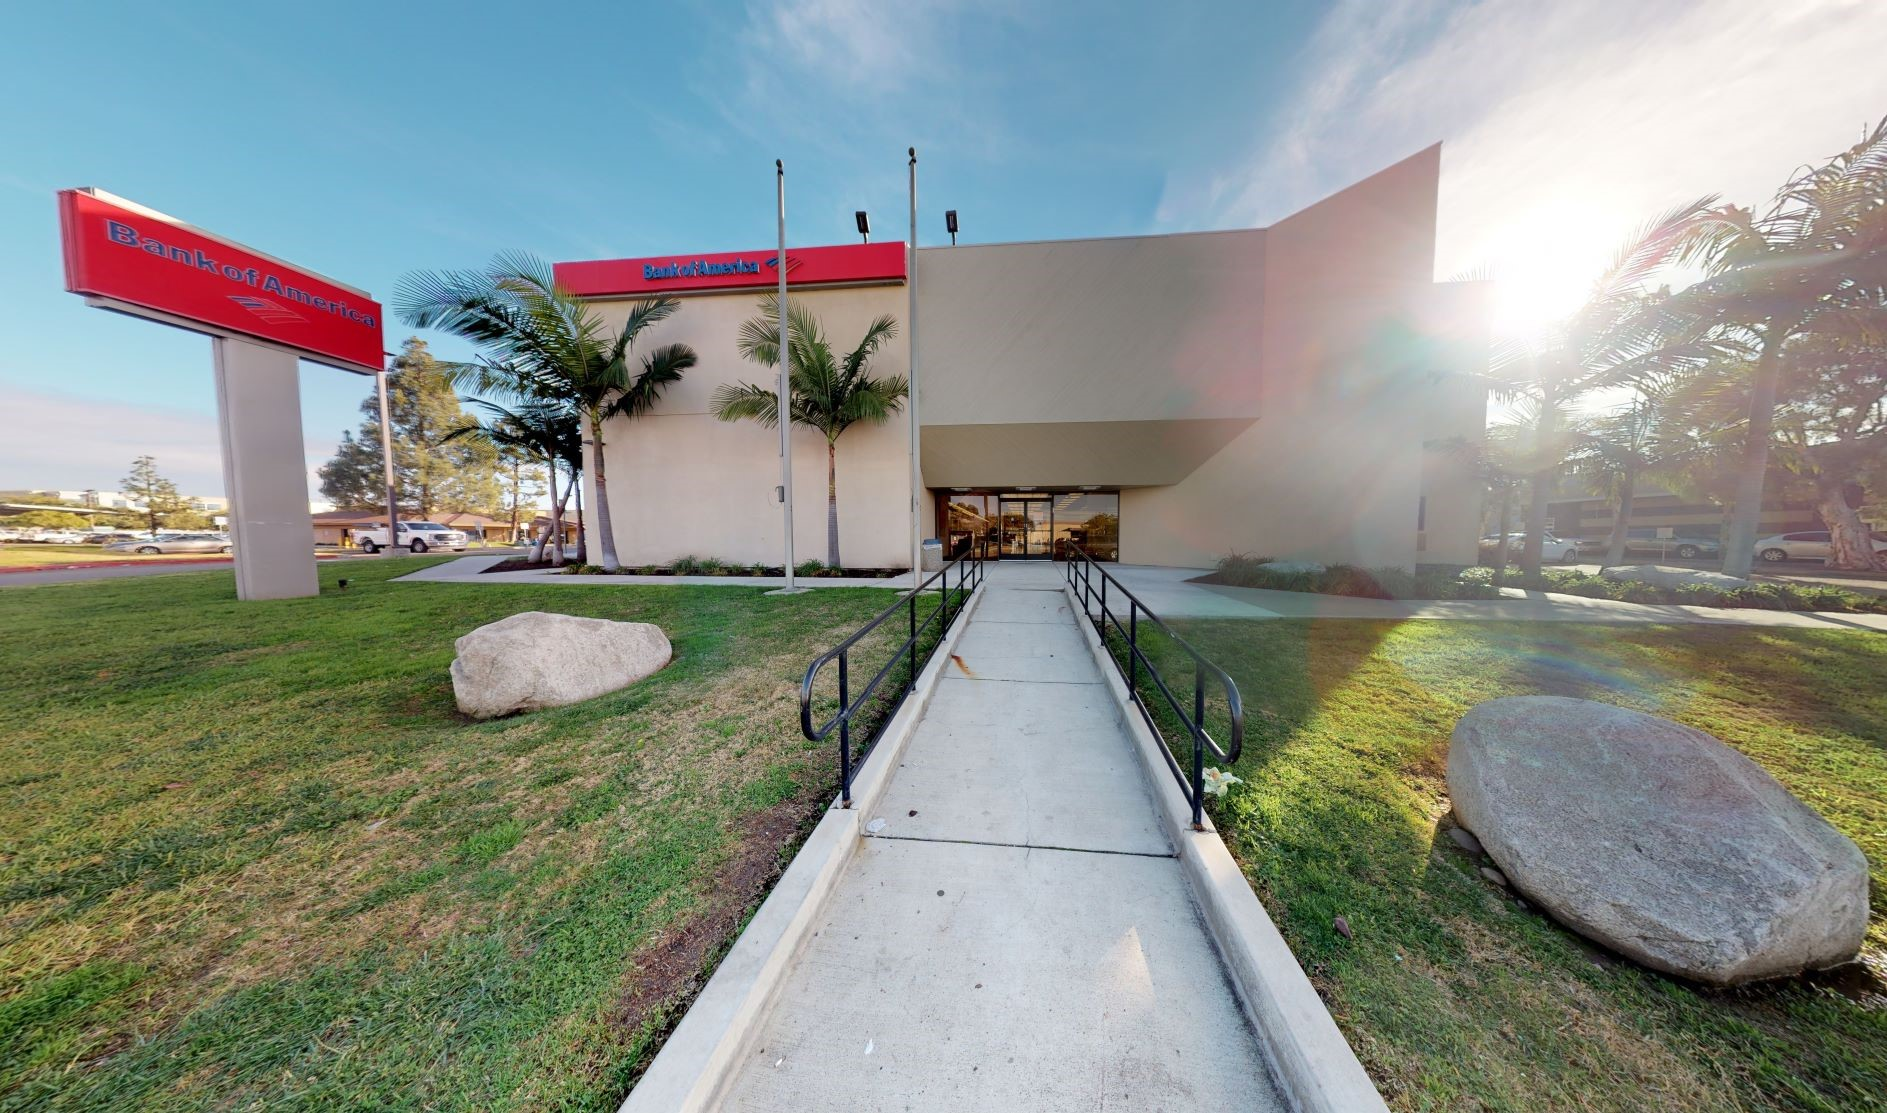 Bank of America financial center with walk-up ATM   8949 Clairemont Mesa Blvd, San Diego, CA 92123